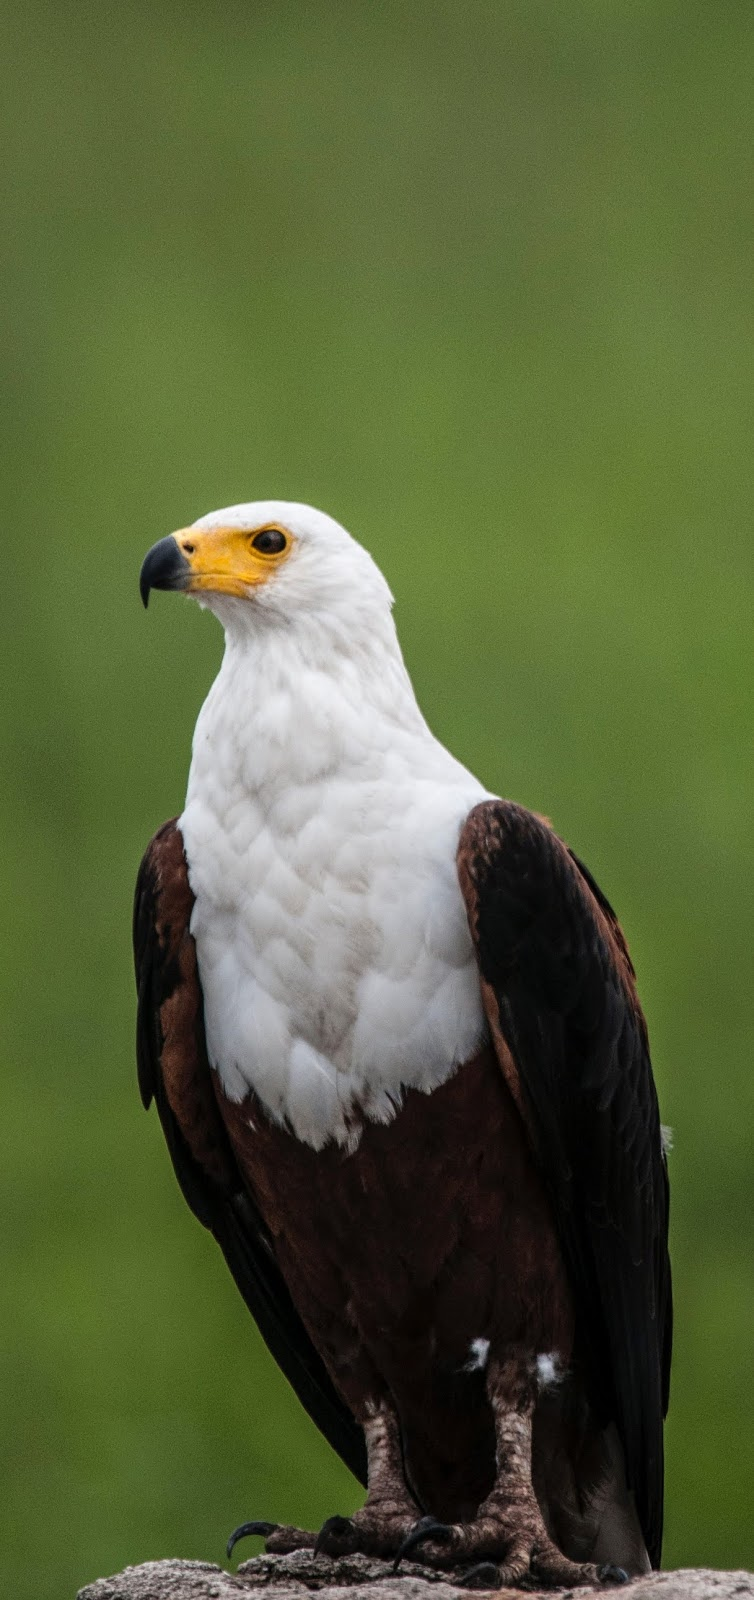 A portrait photo of an eagle.